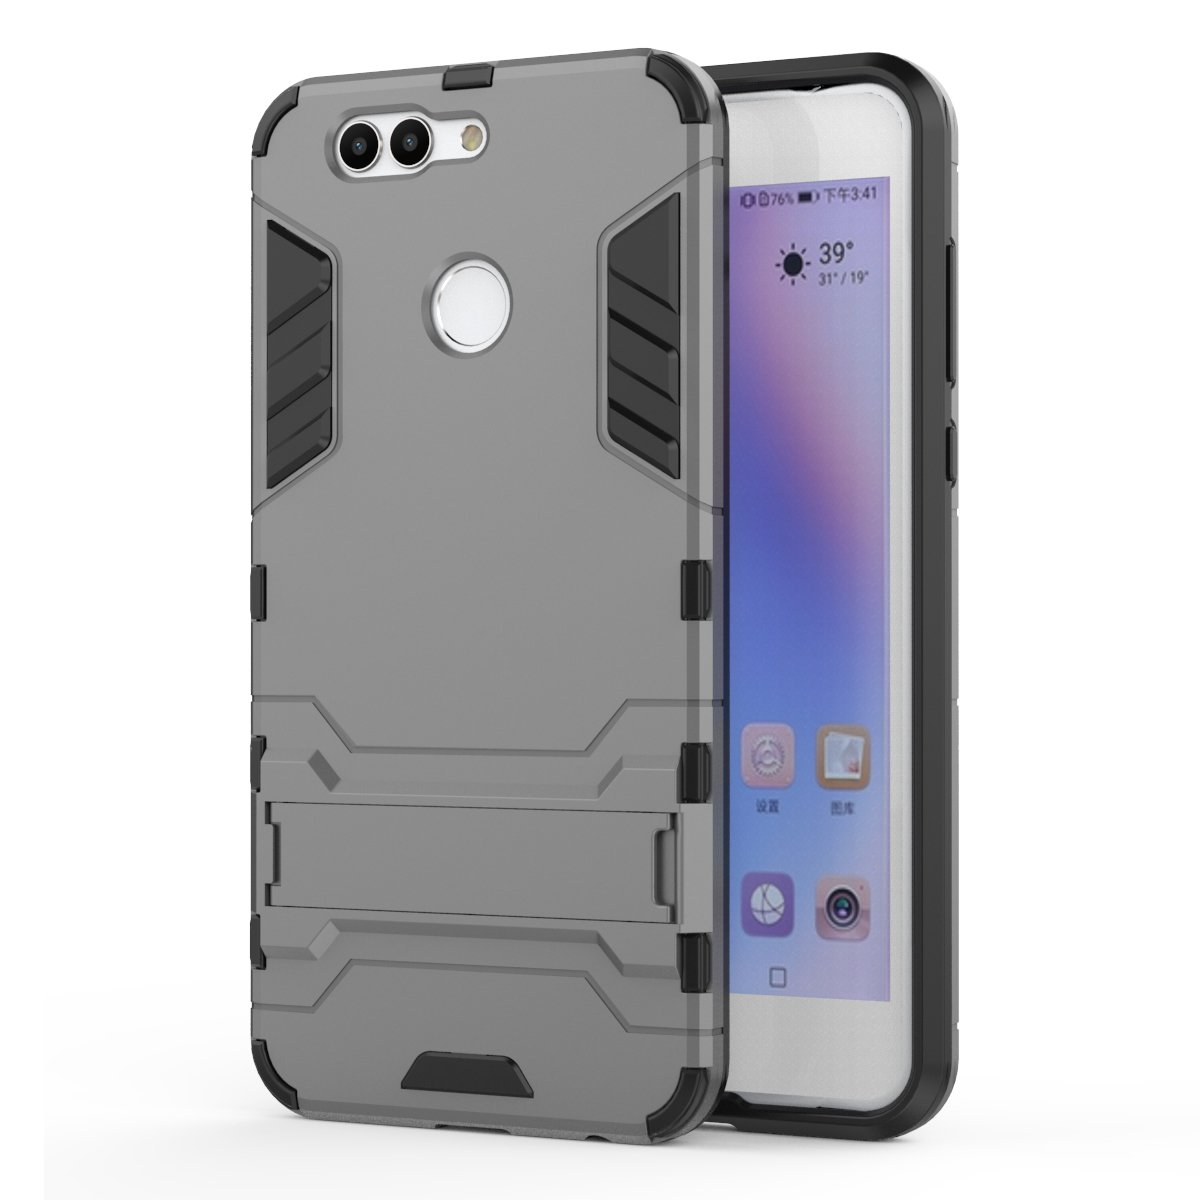 Huawei P10 Selfie Case, Huawei P10 Selfie Hybrid Case, Dual Layer Shockproof Hybrid Rugged Case Hard Shell Cover with Kickstand for 5.5 Huawei P10 ...